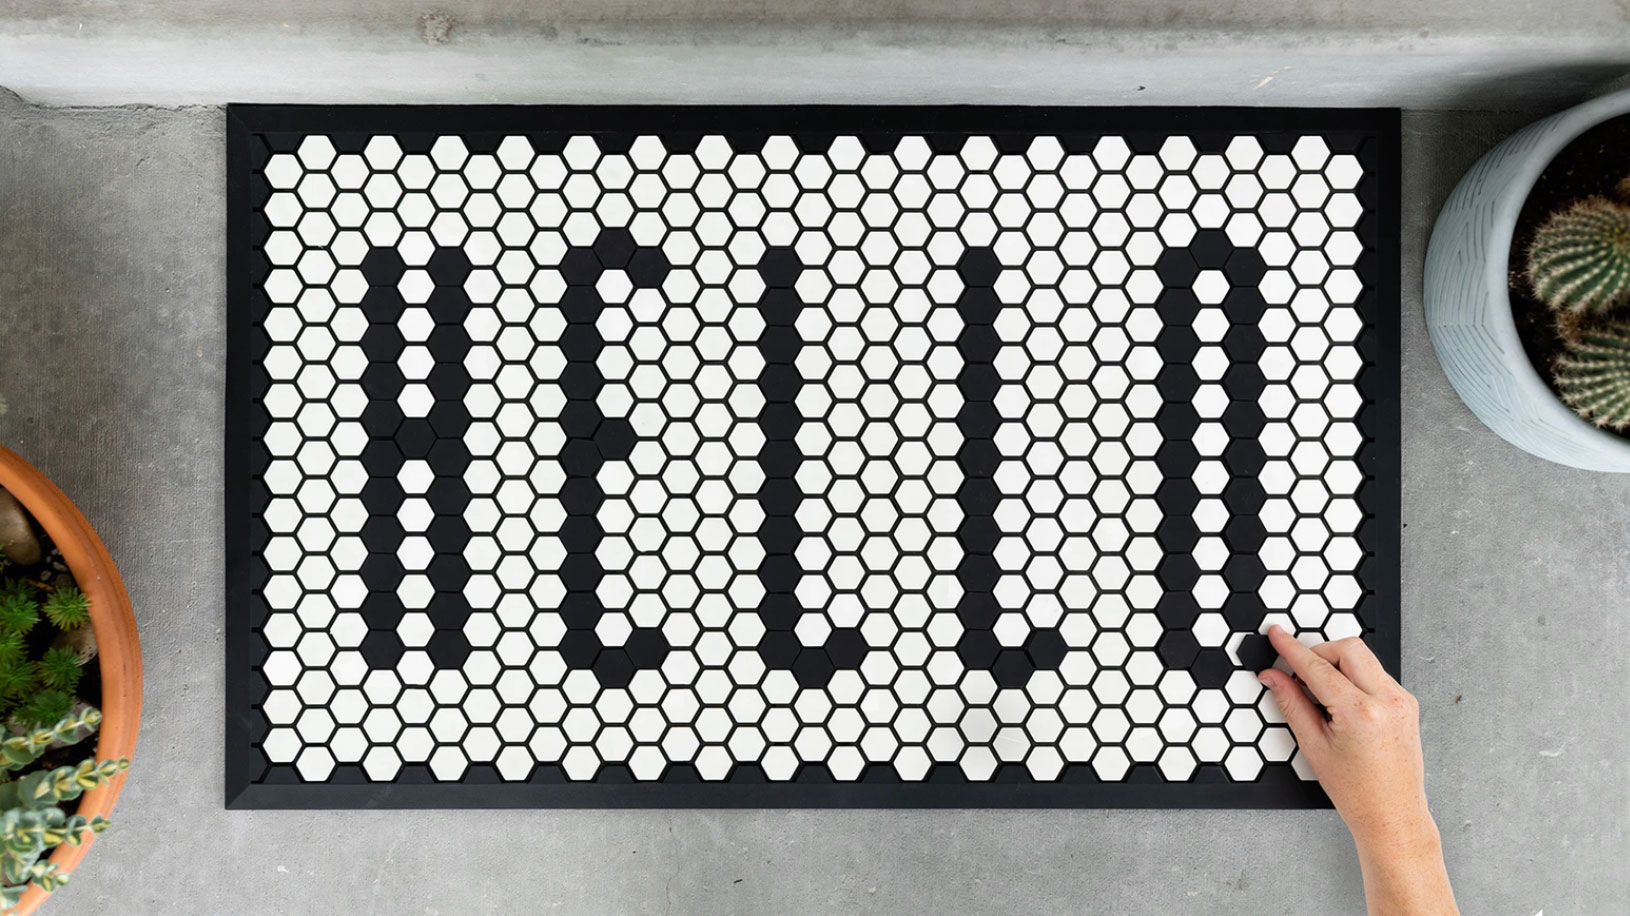 6 Clever Items (4/3/20) - Customizable door mat that says hello